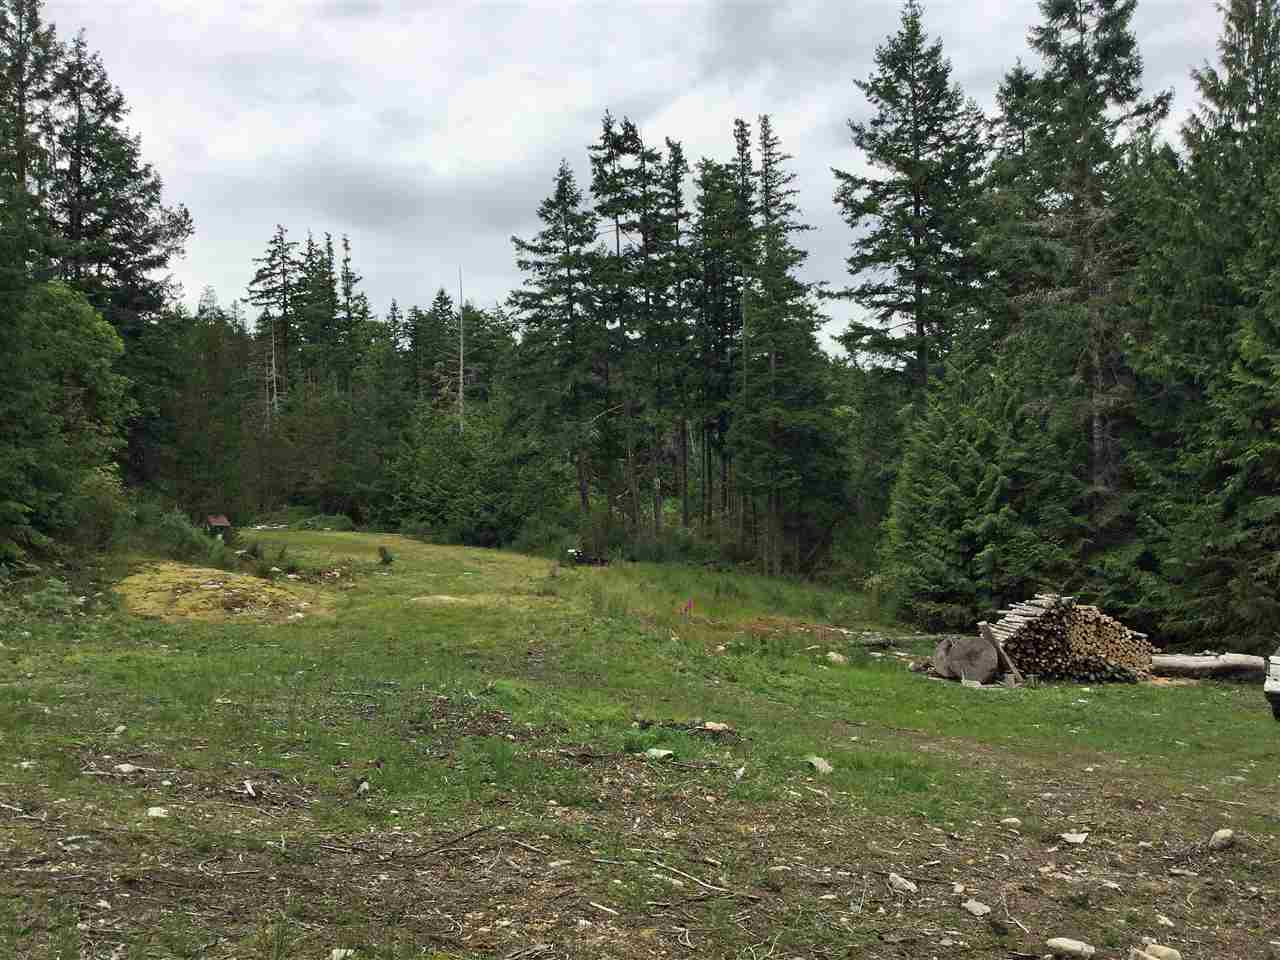 Incredible Acreage (4.47 Acres) Purchase Opportunity! Very Private Just steps to Moorage in Secret Cove. Driveway is cleared and much of property is groomed into meadow with machine groomed trails throughout the forested portions to a choice of building locations with view potential. 2nd legal driveway off Sunshine Coast Hwy. is currently under construction. Many beautiful Arbutus Trees throughout this property. Drilled well on site, with entitlement to Municipal Water. Two dwellings permitted - super group or family purchase opportunity.